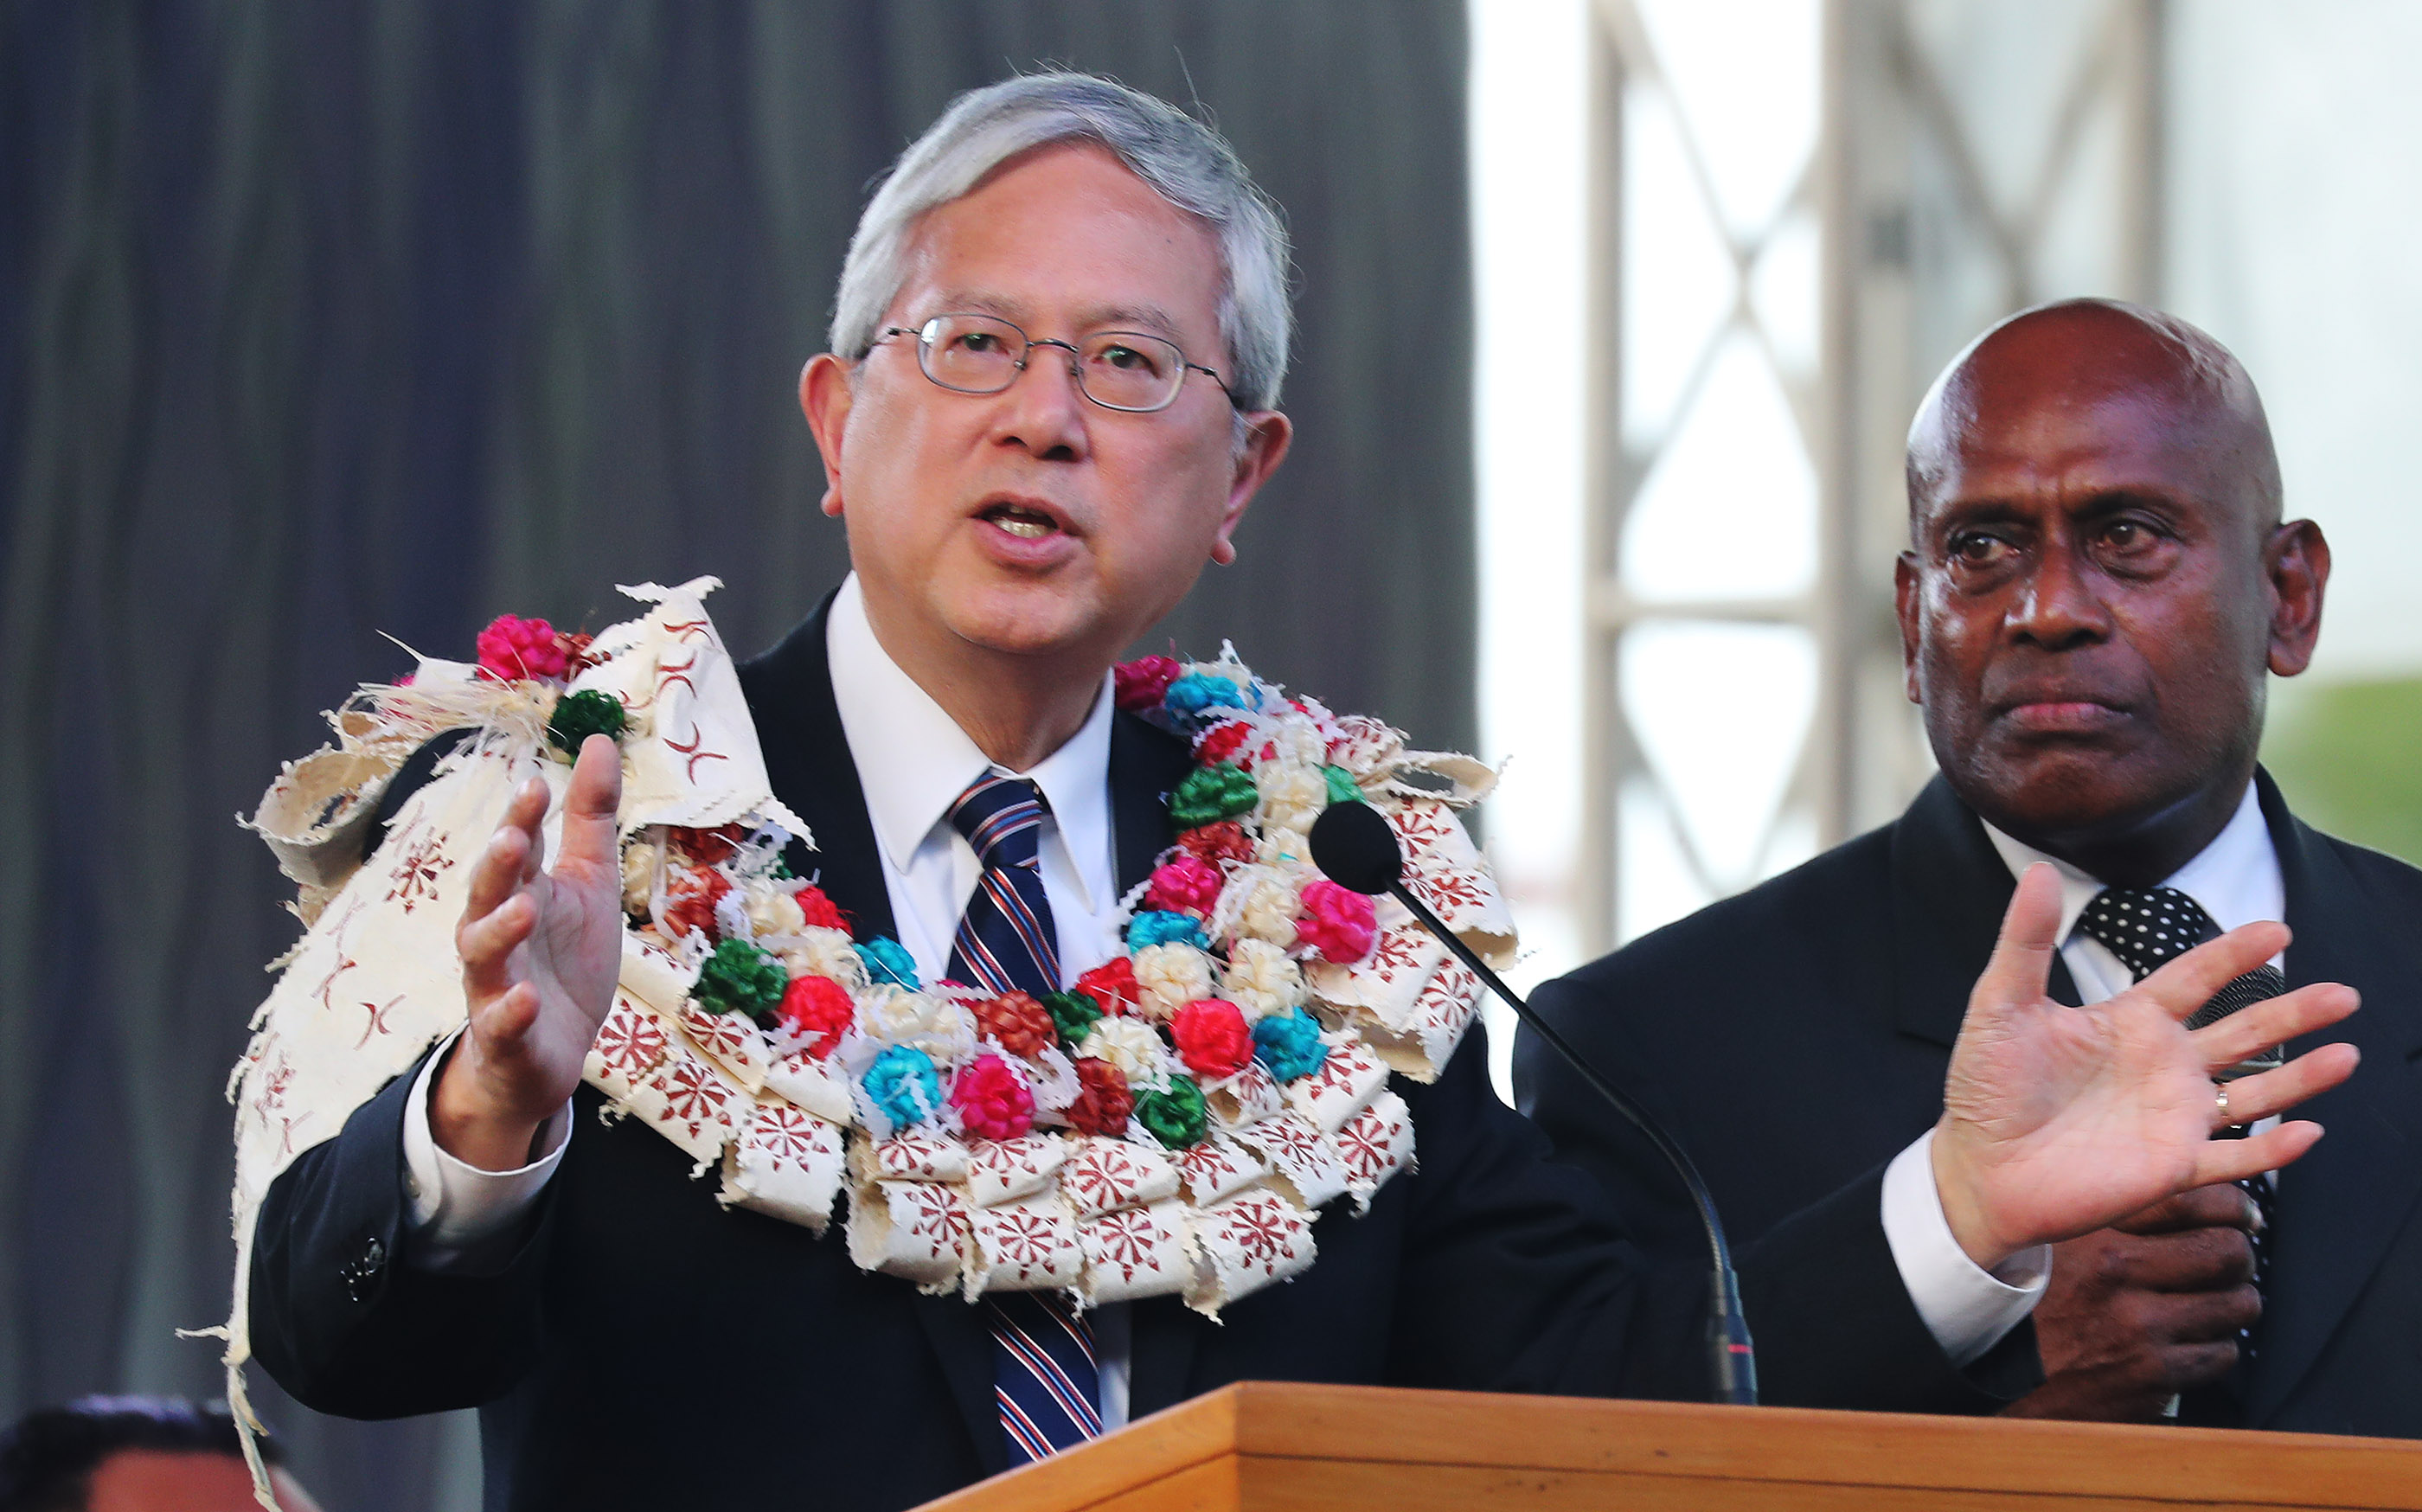 Elder Elder Gerrit W. Gong, of The Church of Jesus Christ of Latter-day Saints' Quorum of the Twelve Apostles speaks during a devotional in Nausori, Fiji on May 22, 2019.